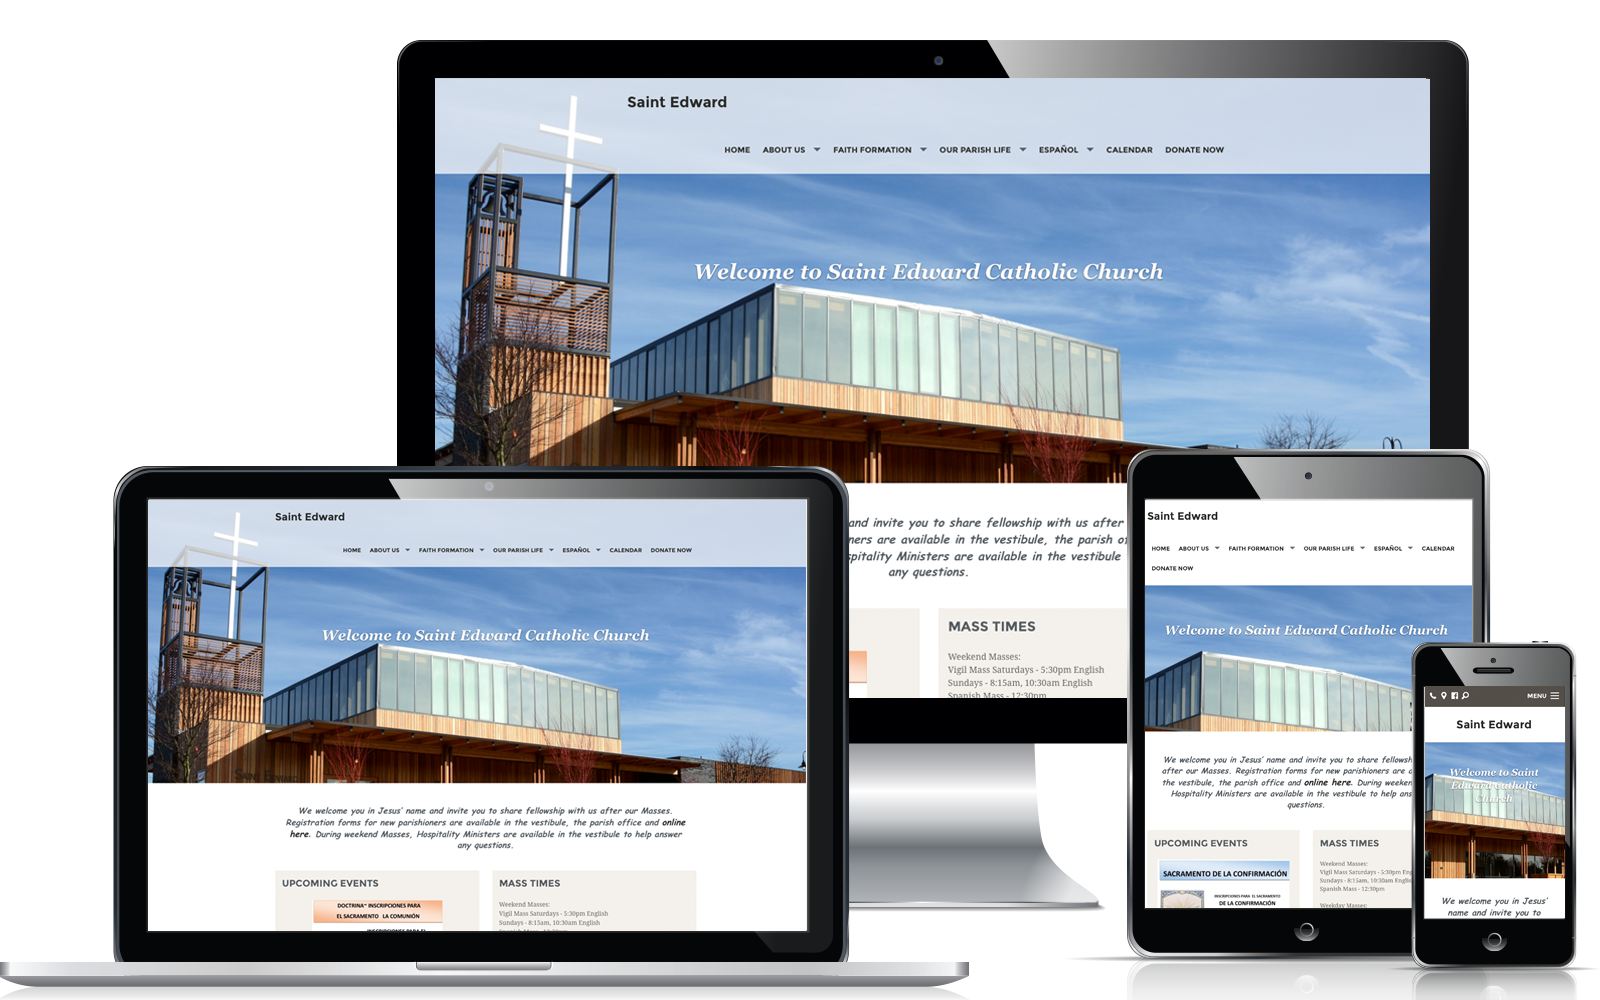 WeConnect Church Websites: St. Edward